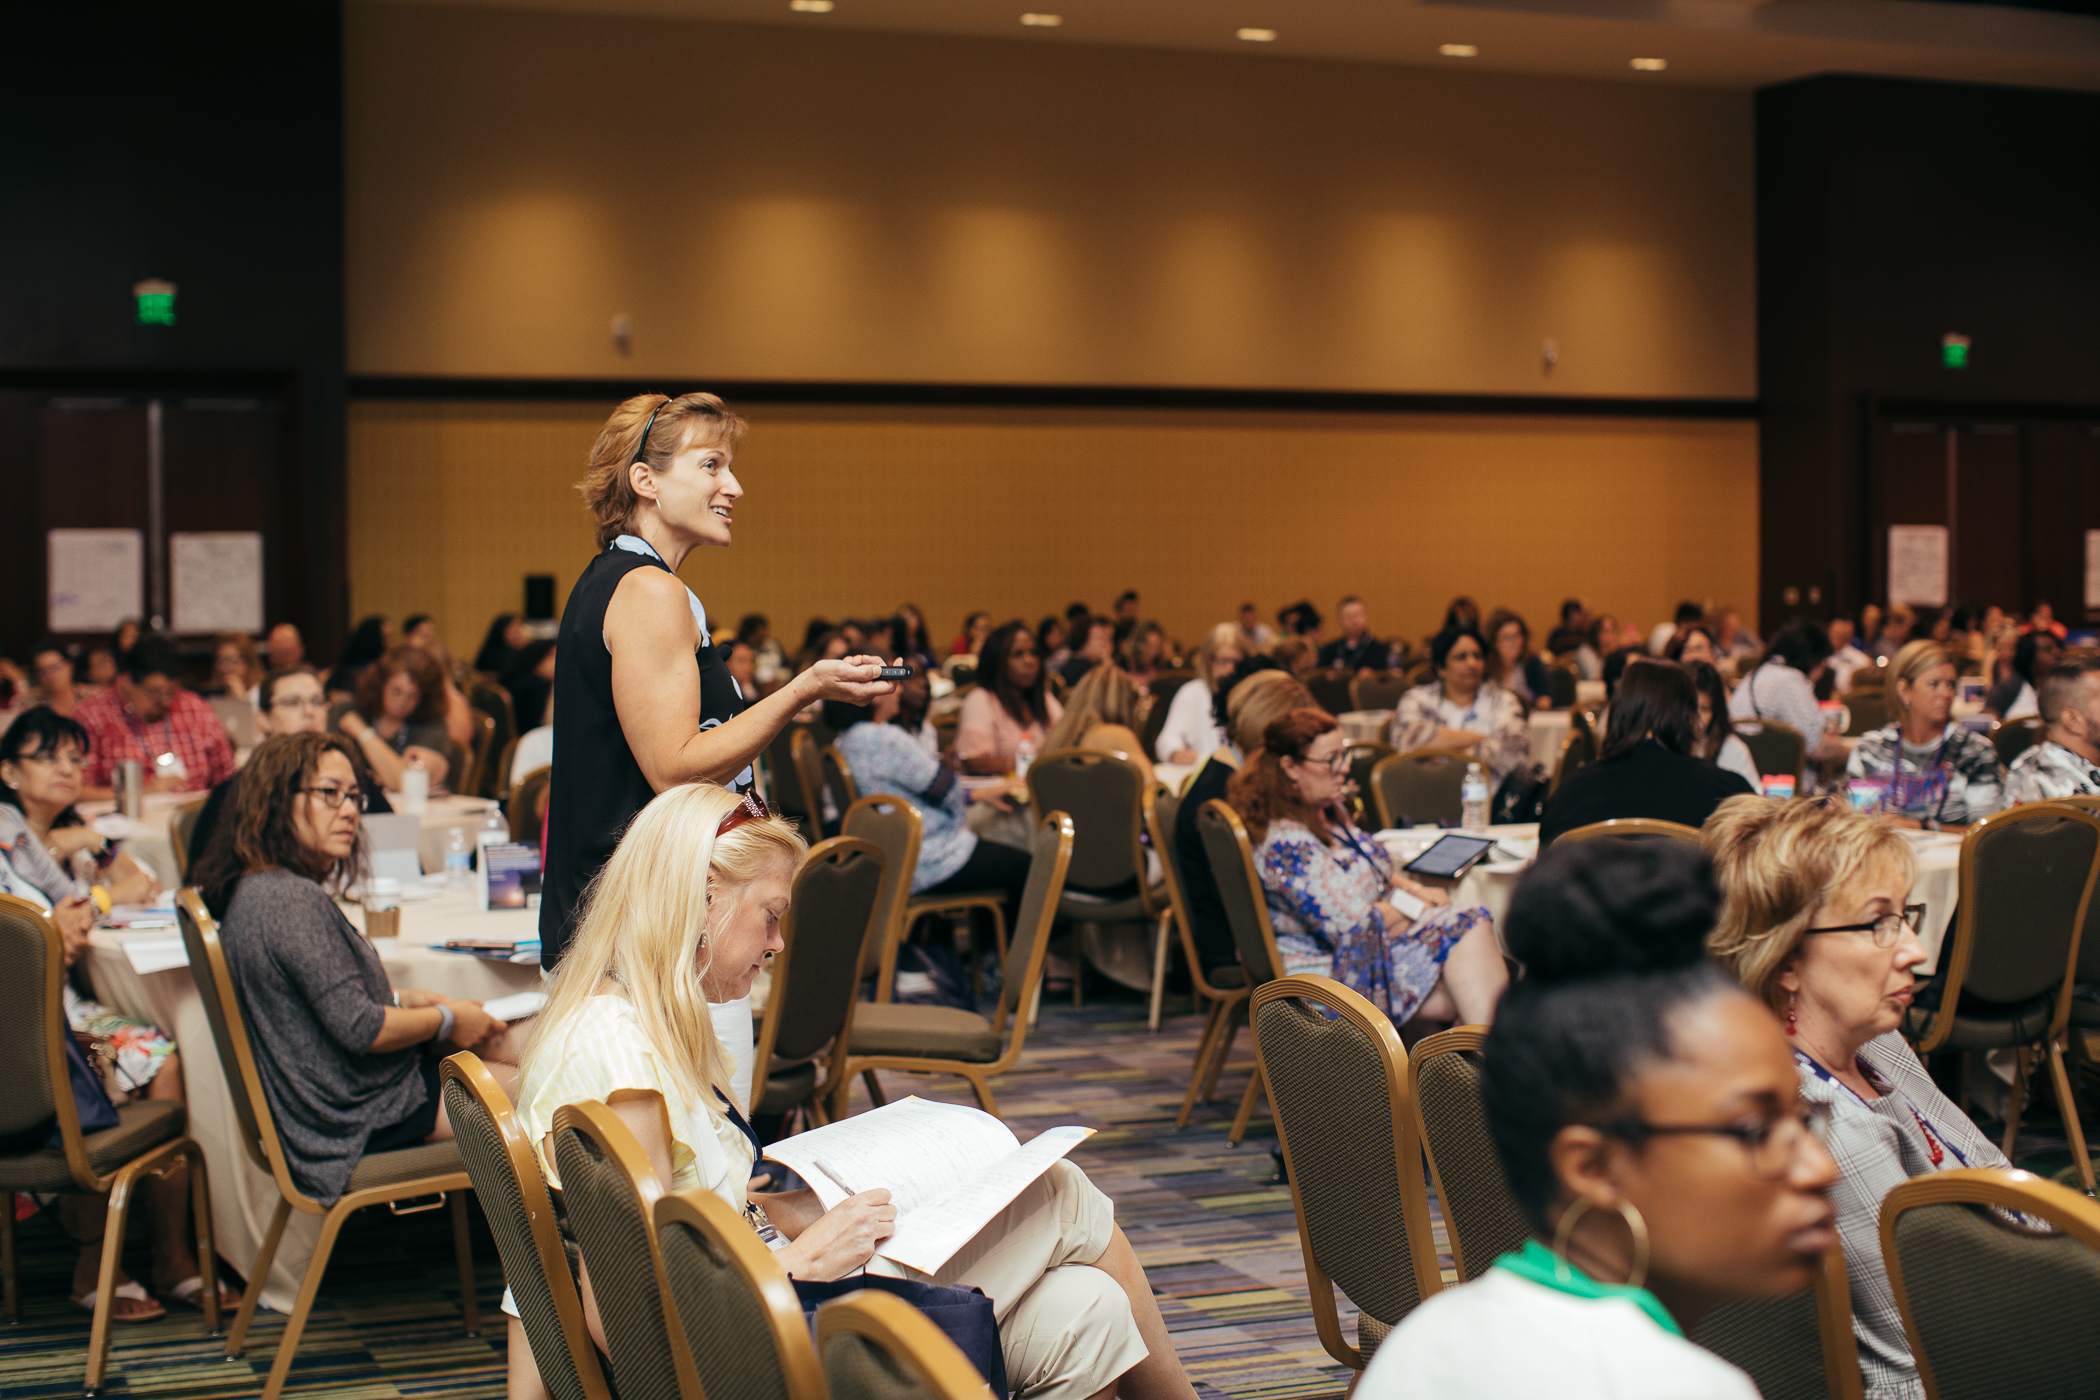 live event commercial photography brand storytelling for education florida conference photographer ©2018abigailbobophotography-66.jpg